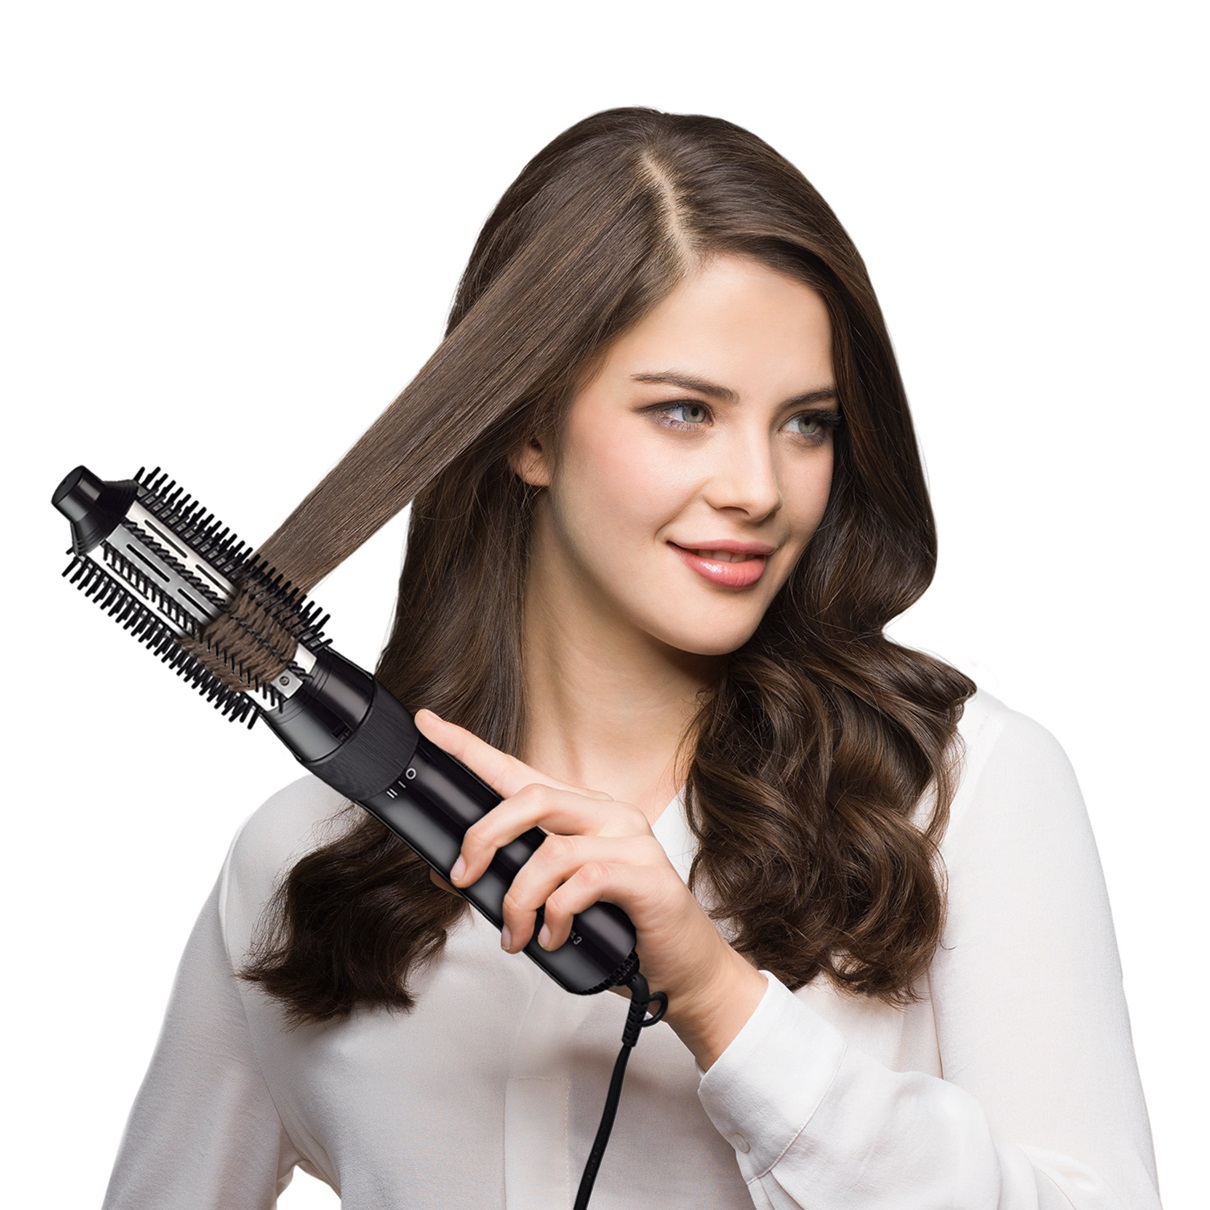 Braun Satin Hair 3 AS330 Airstyler with ceramic protection - in use